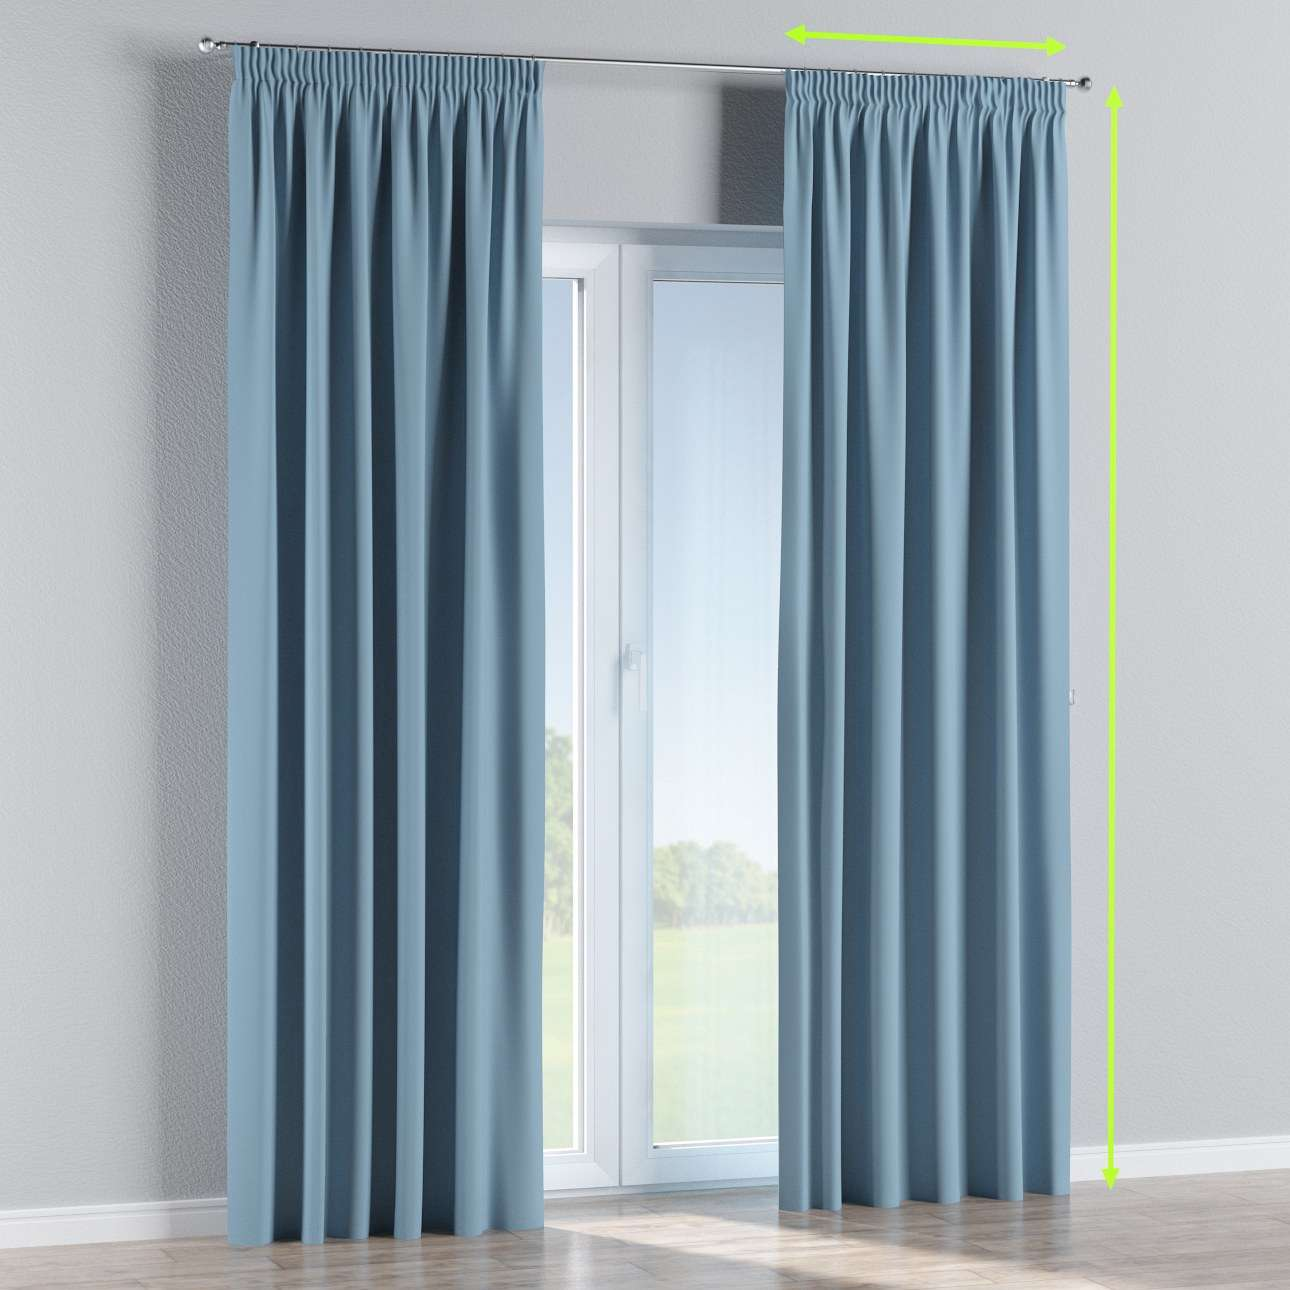 Pencil pleat curtains in collection Blackout, fabric: 269-08